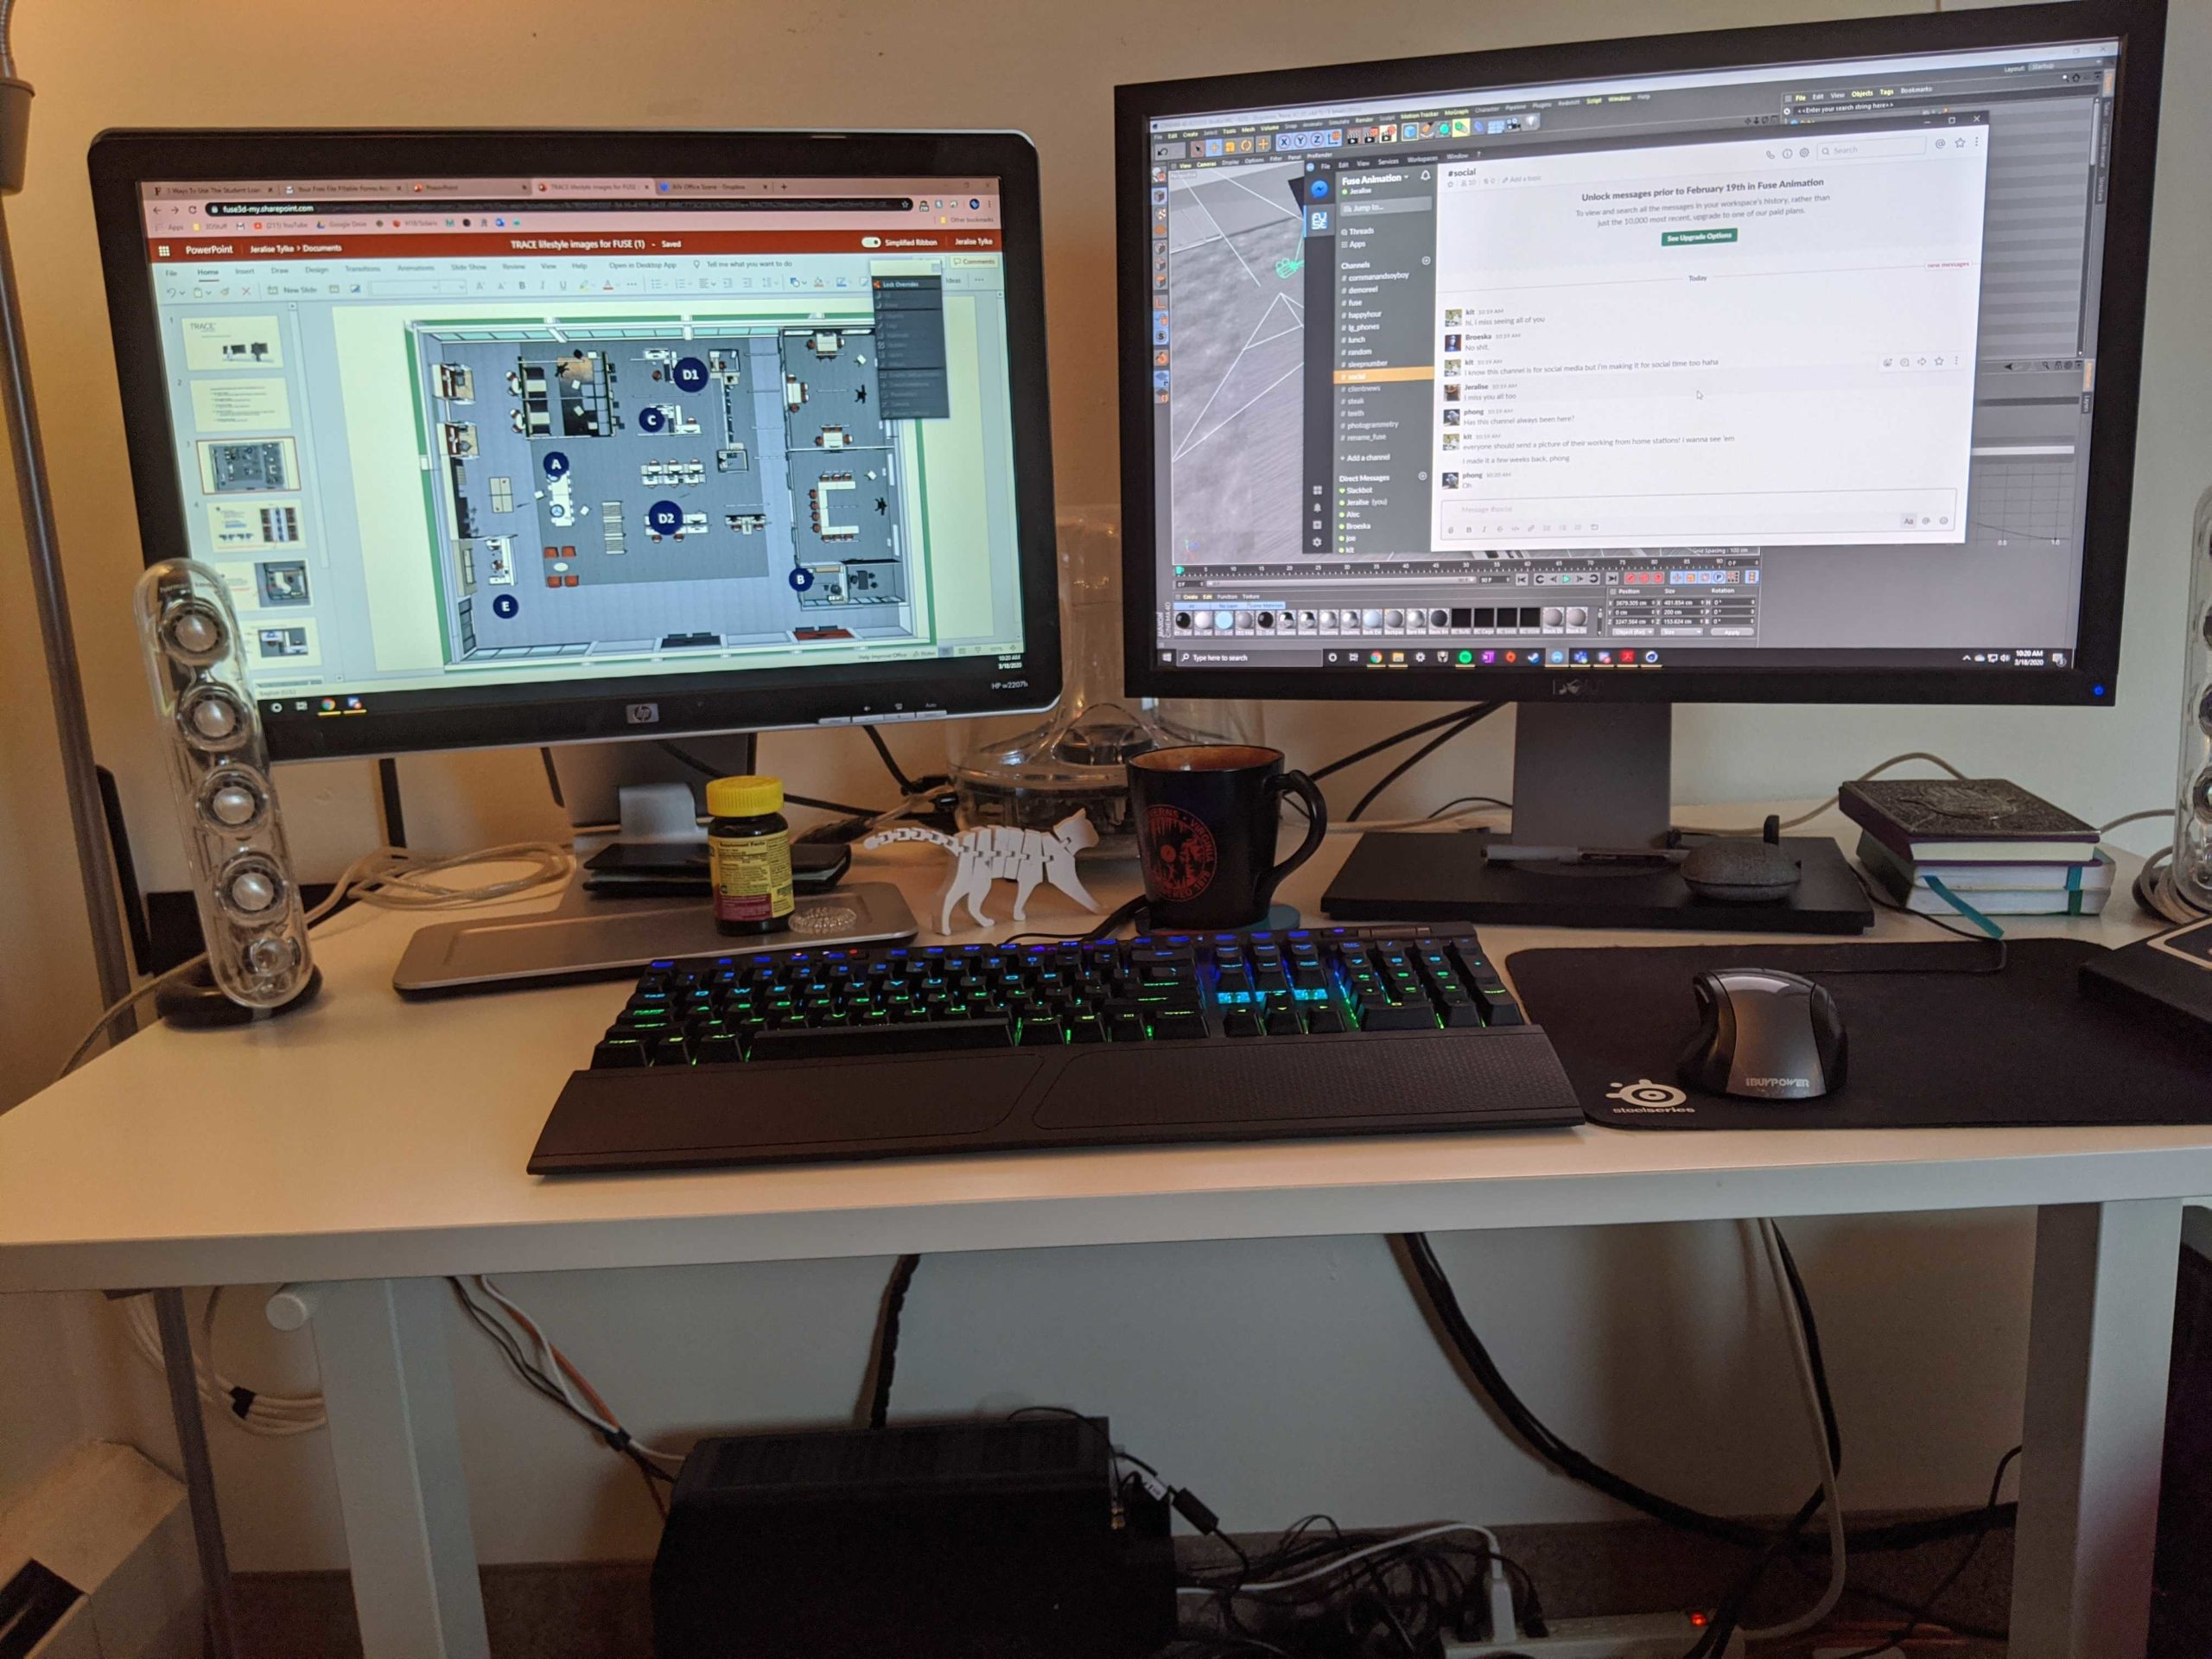 jera's working from home station